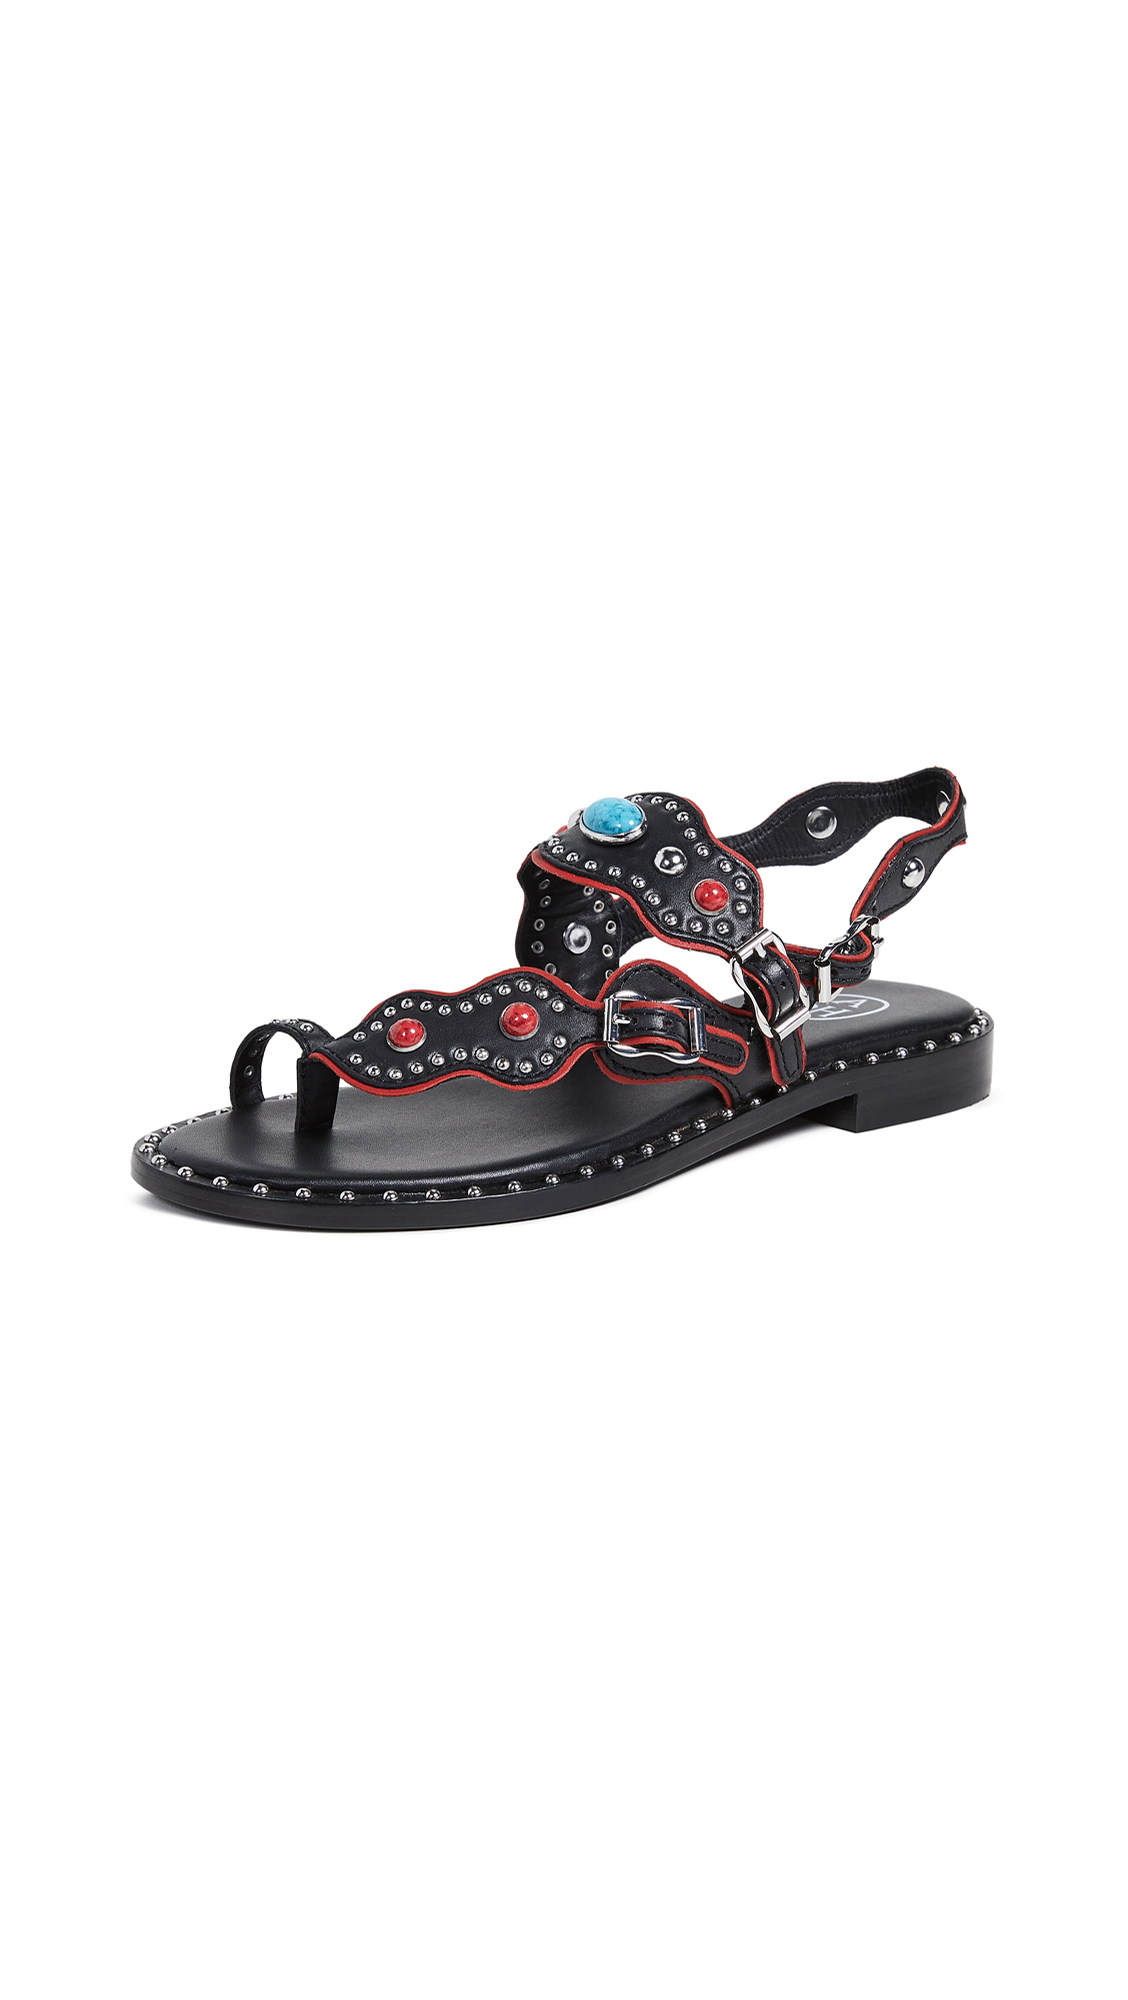 Ash Pacha Sandals - Black/Red